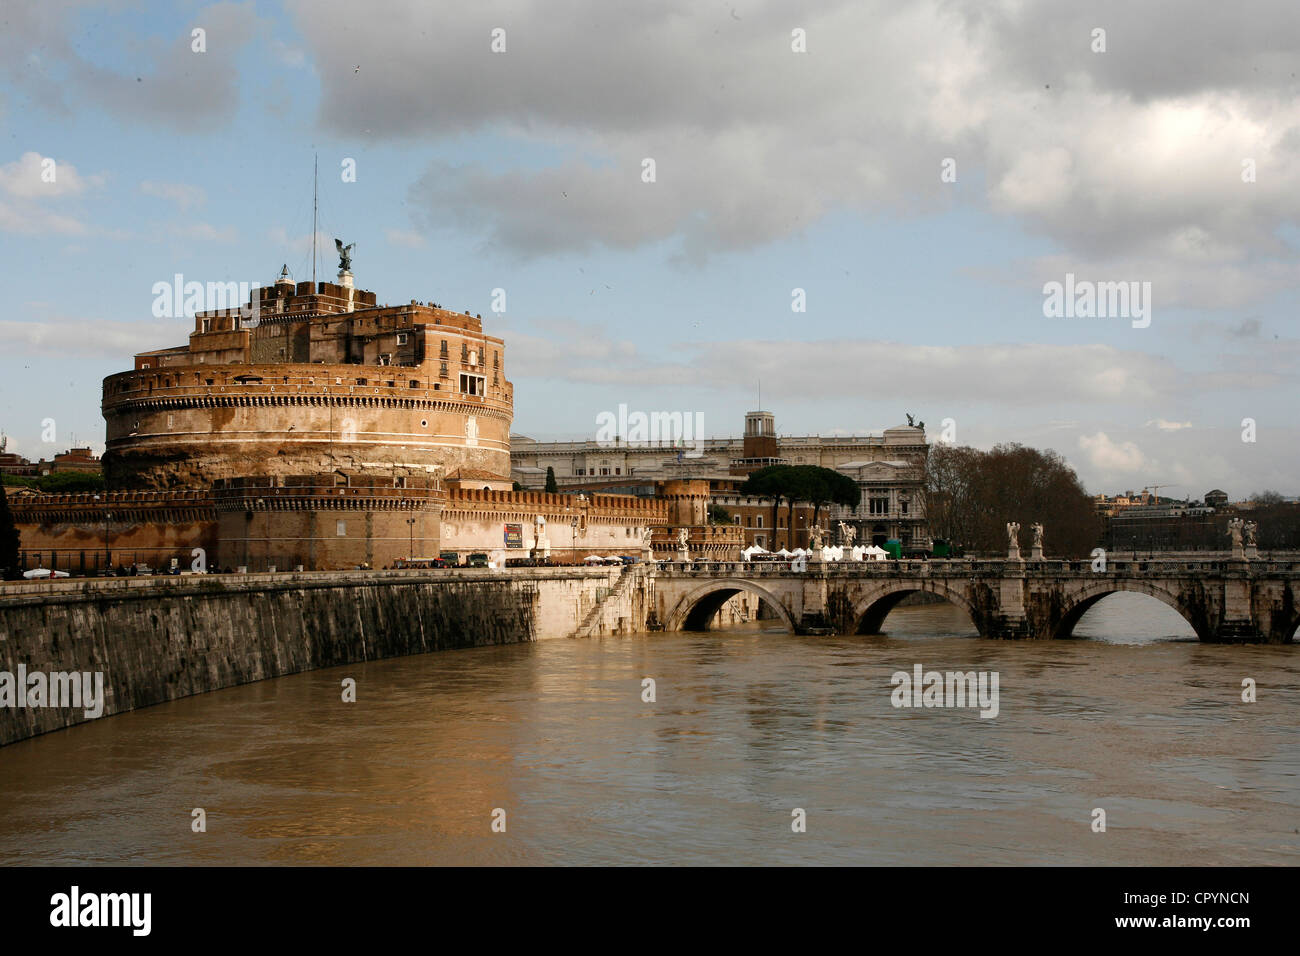 Castel Sant Angelo and River Tiber, Rome, Lazio, Italy, Europe - Stock Image